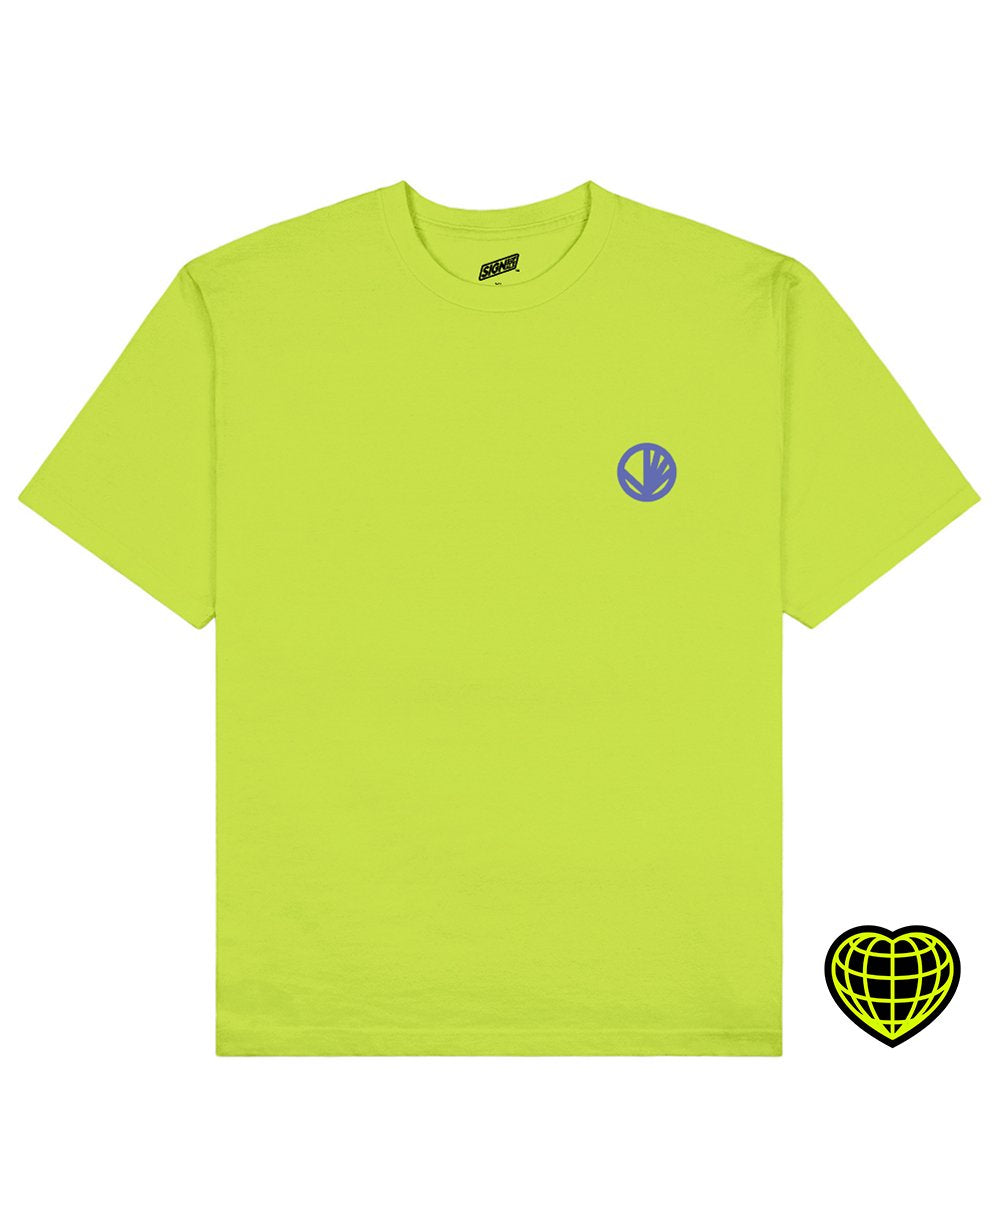 Circle with beams Print T-shirt in Light Green - T-shirts - Signs of Signals - BRANMA